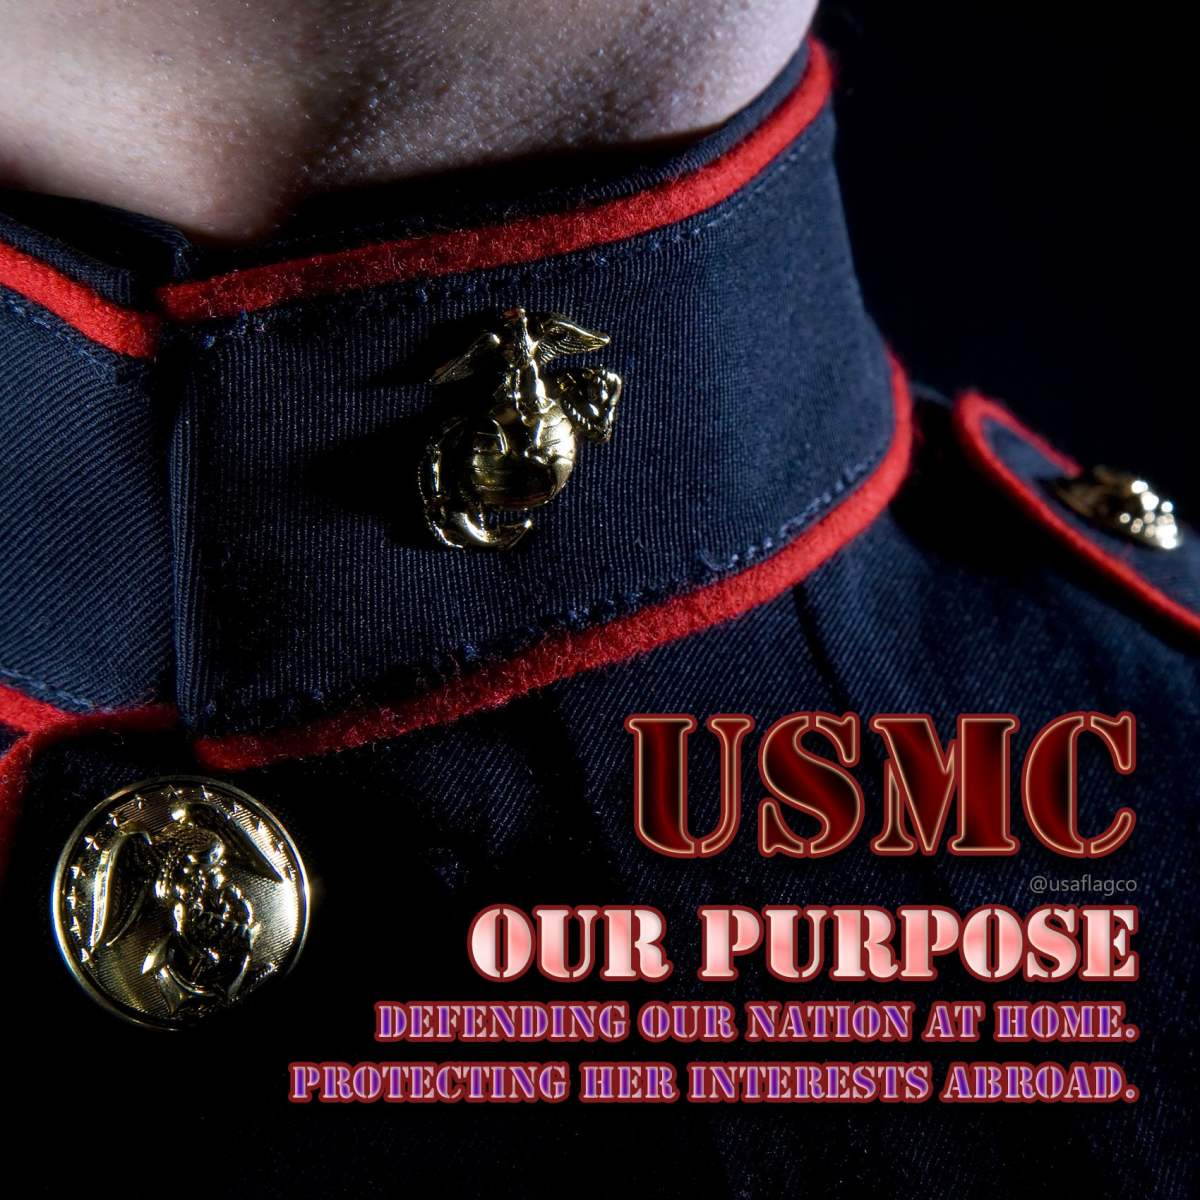 USMC Our Purpose